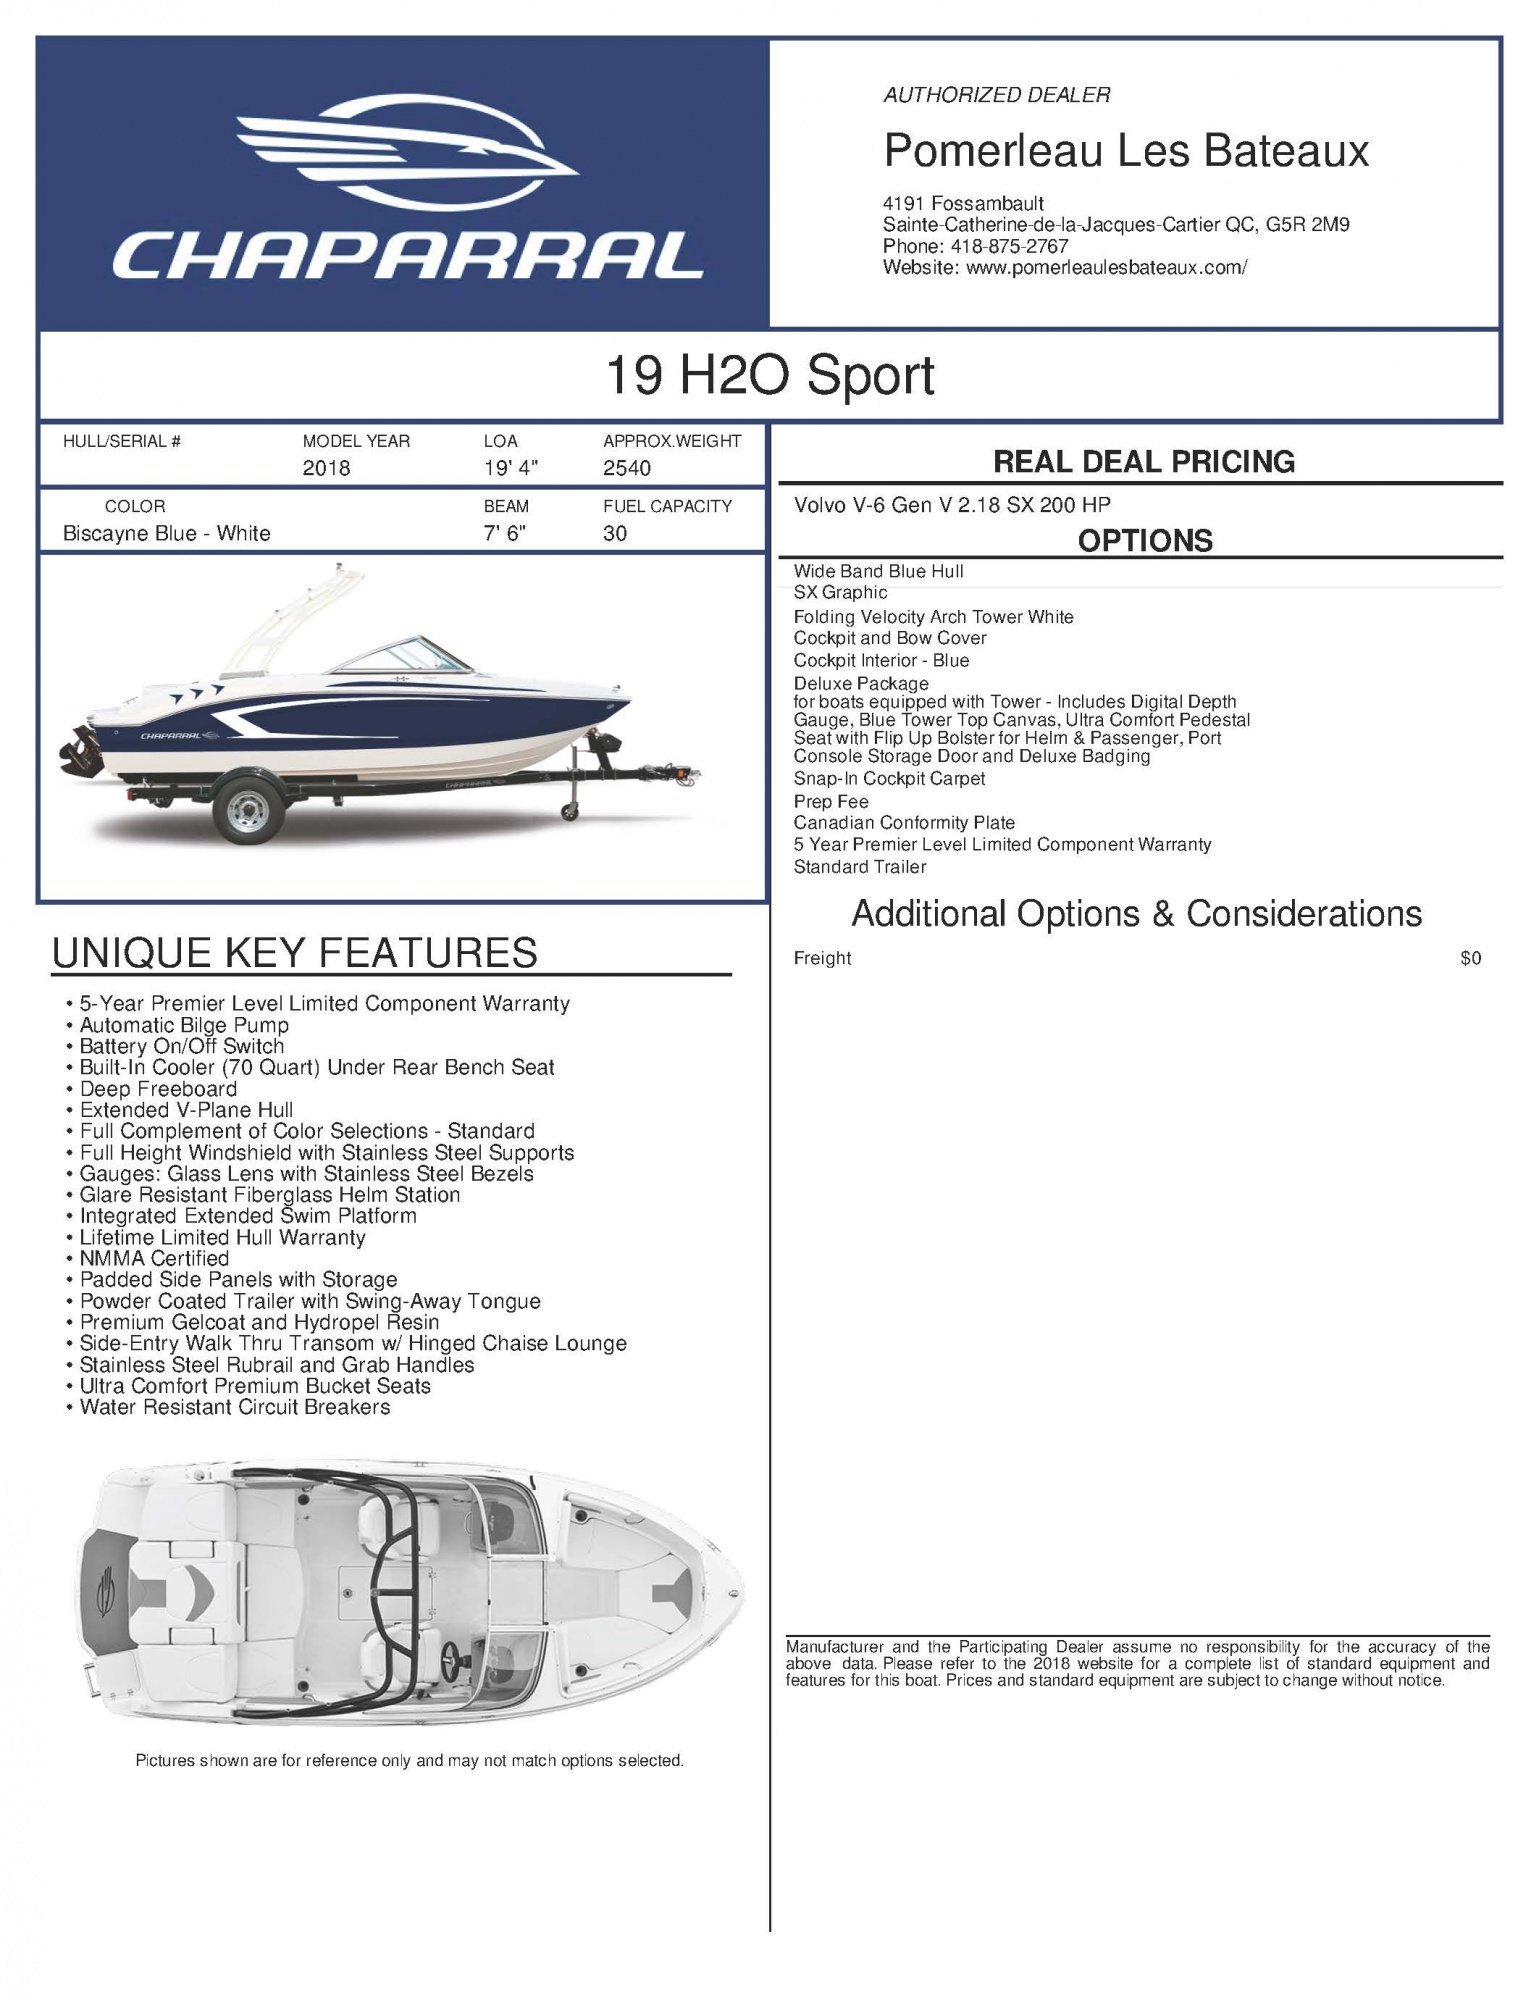 Chaparral H2O 19 - Chaparral-Boats-2018-19-Sport-Window-Sticker-247720